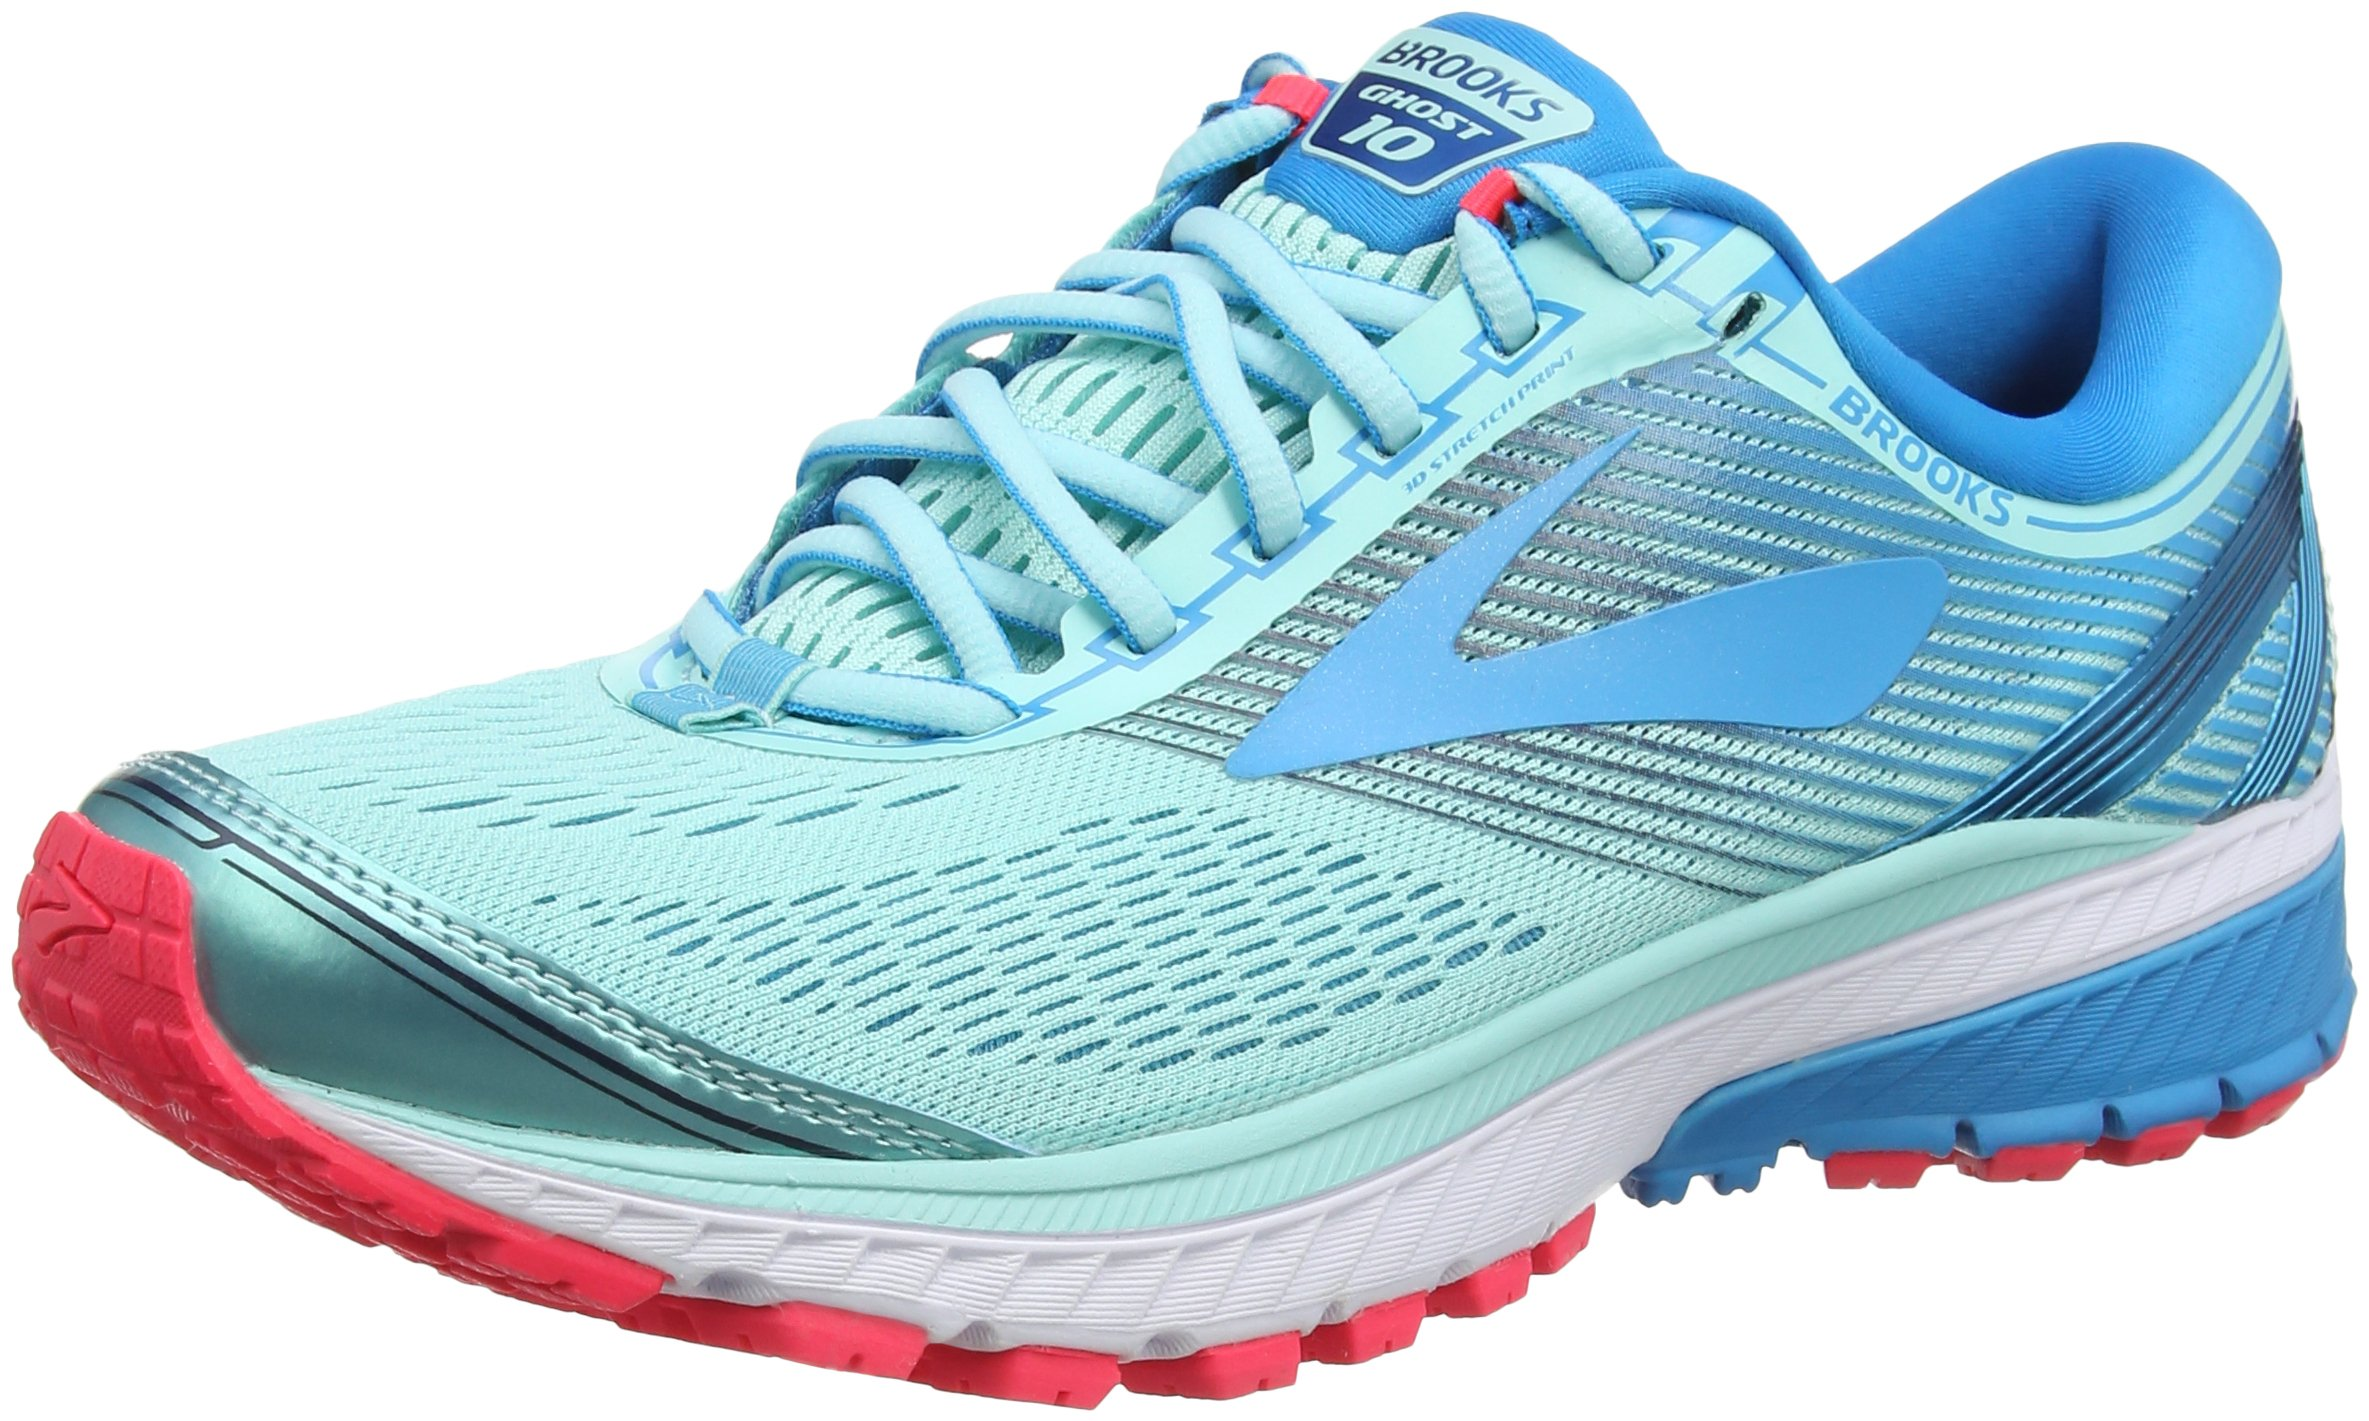 5b6cbb799abe Brooks Women s Ghost 10 Running Shoes - The sports shop